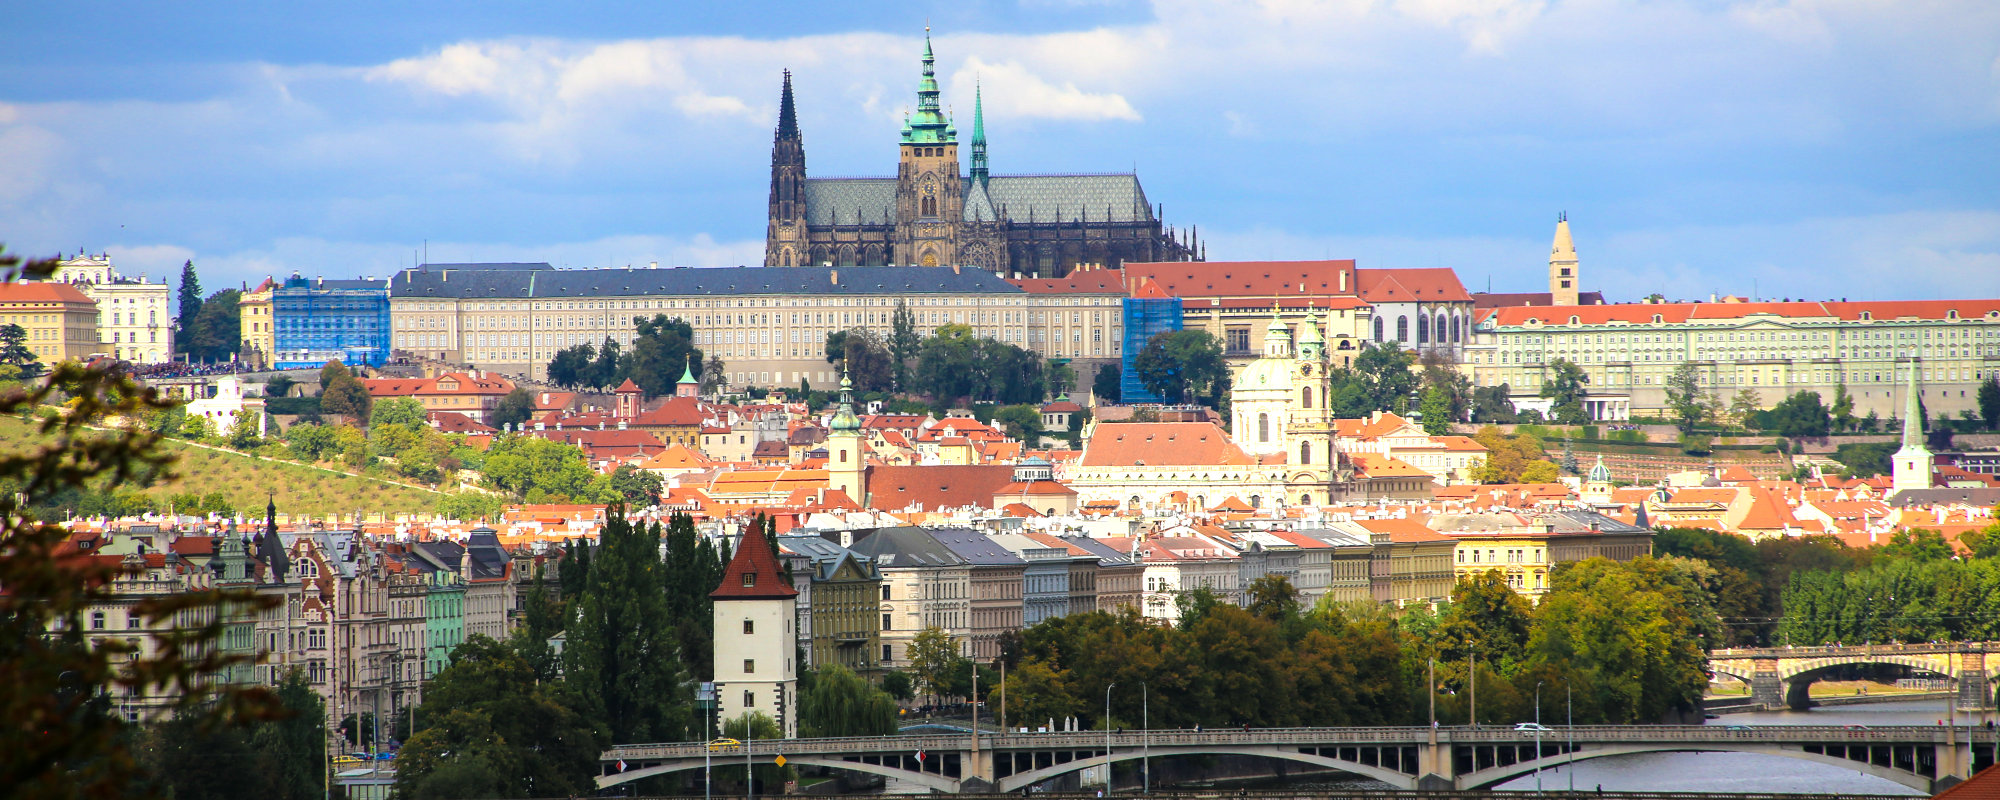 Prague castle 1AA